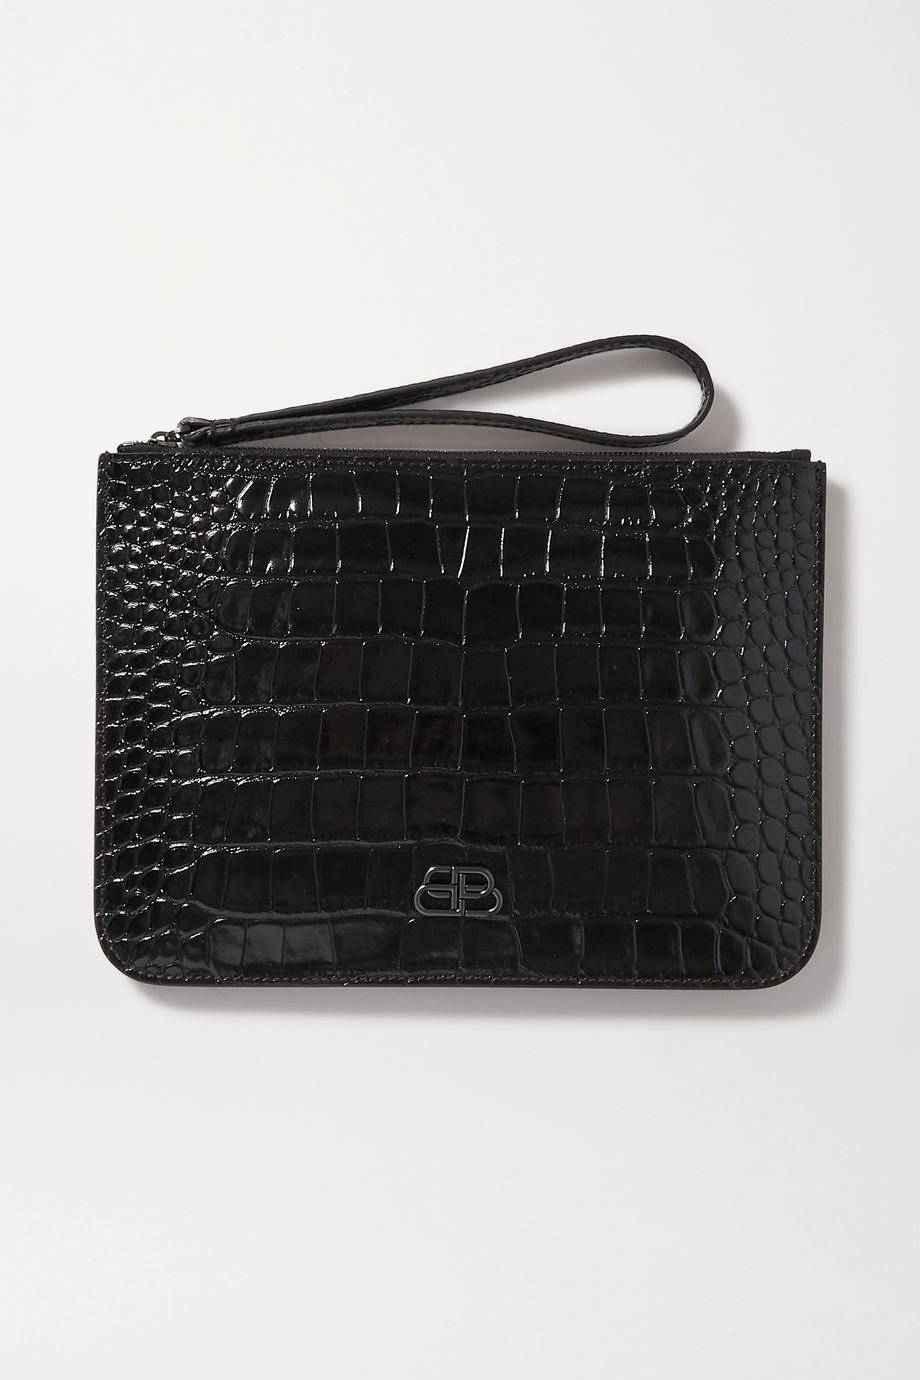 Balenciaga BB croc-effect leather pouch